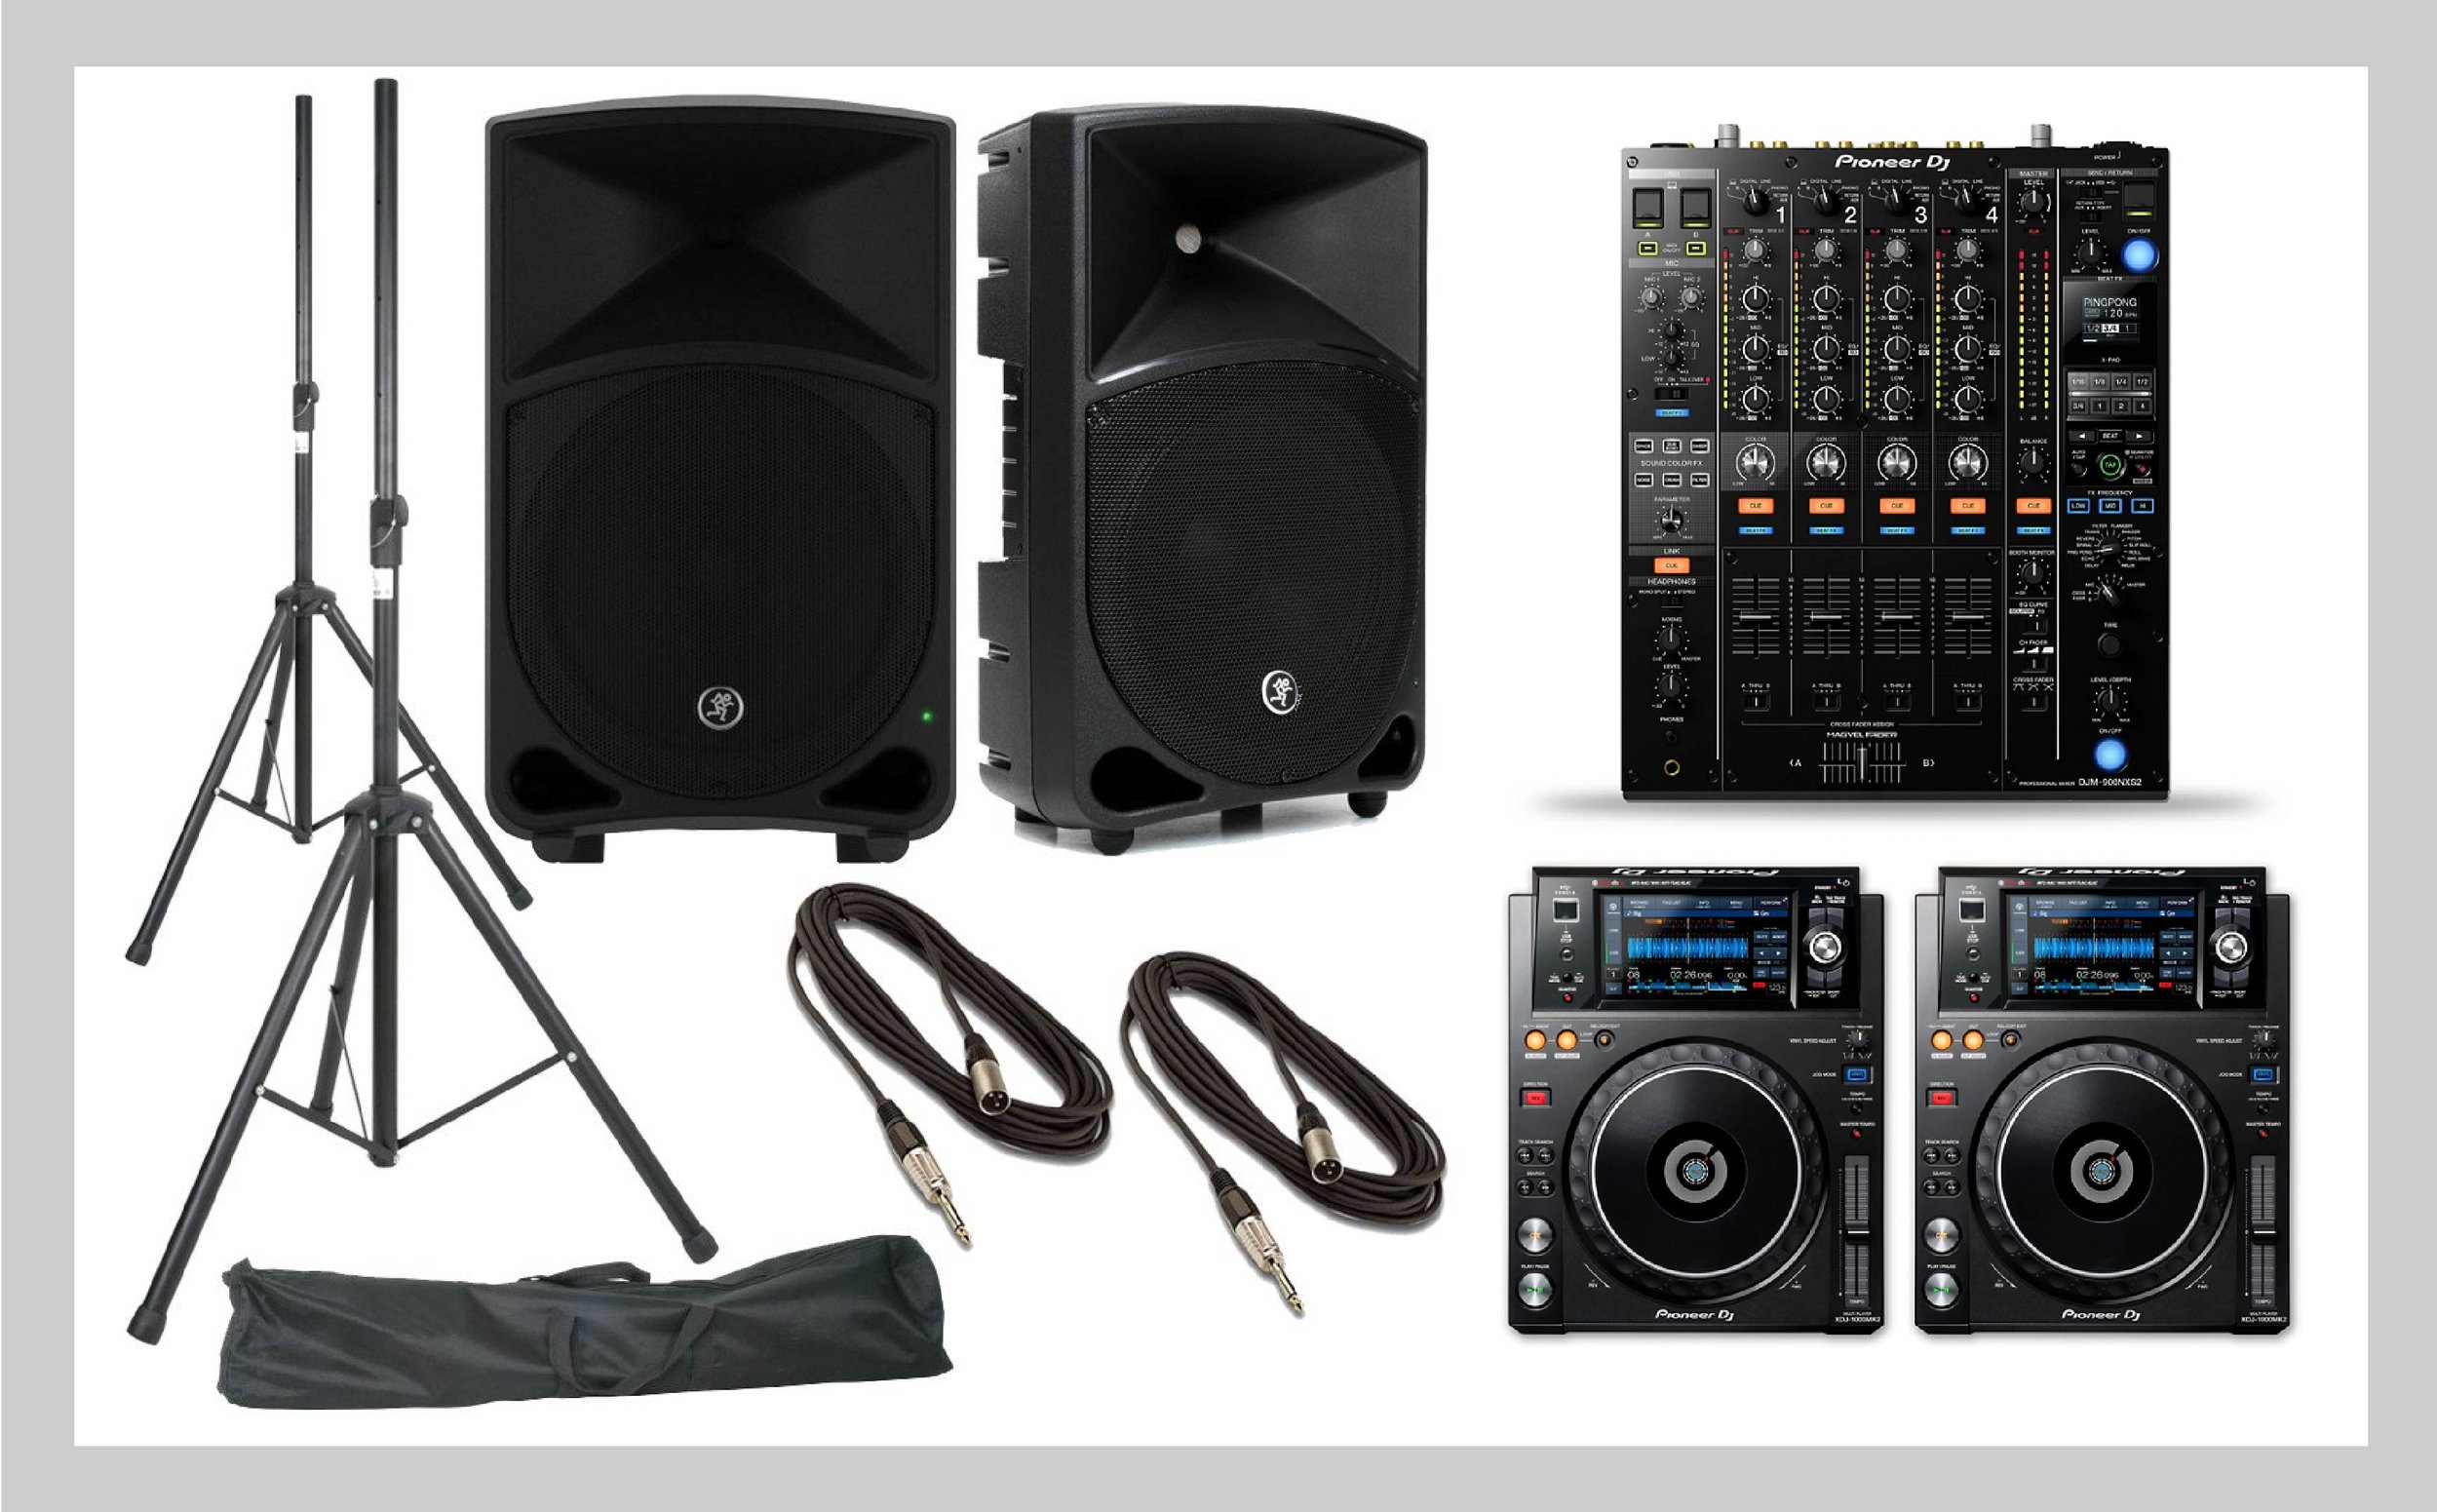 DJ Package: $475.00  2 Mackie Thumps, XLR cables, stands  2 CDJ 2000  1 DJM900 Mixer